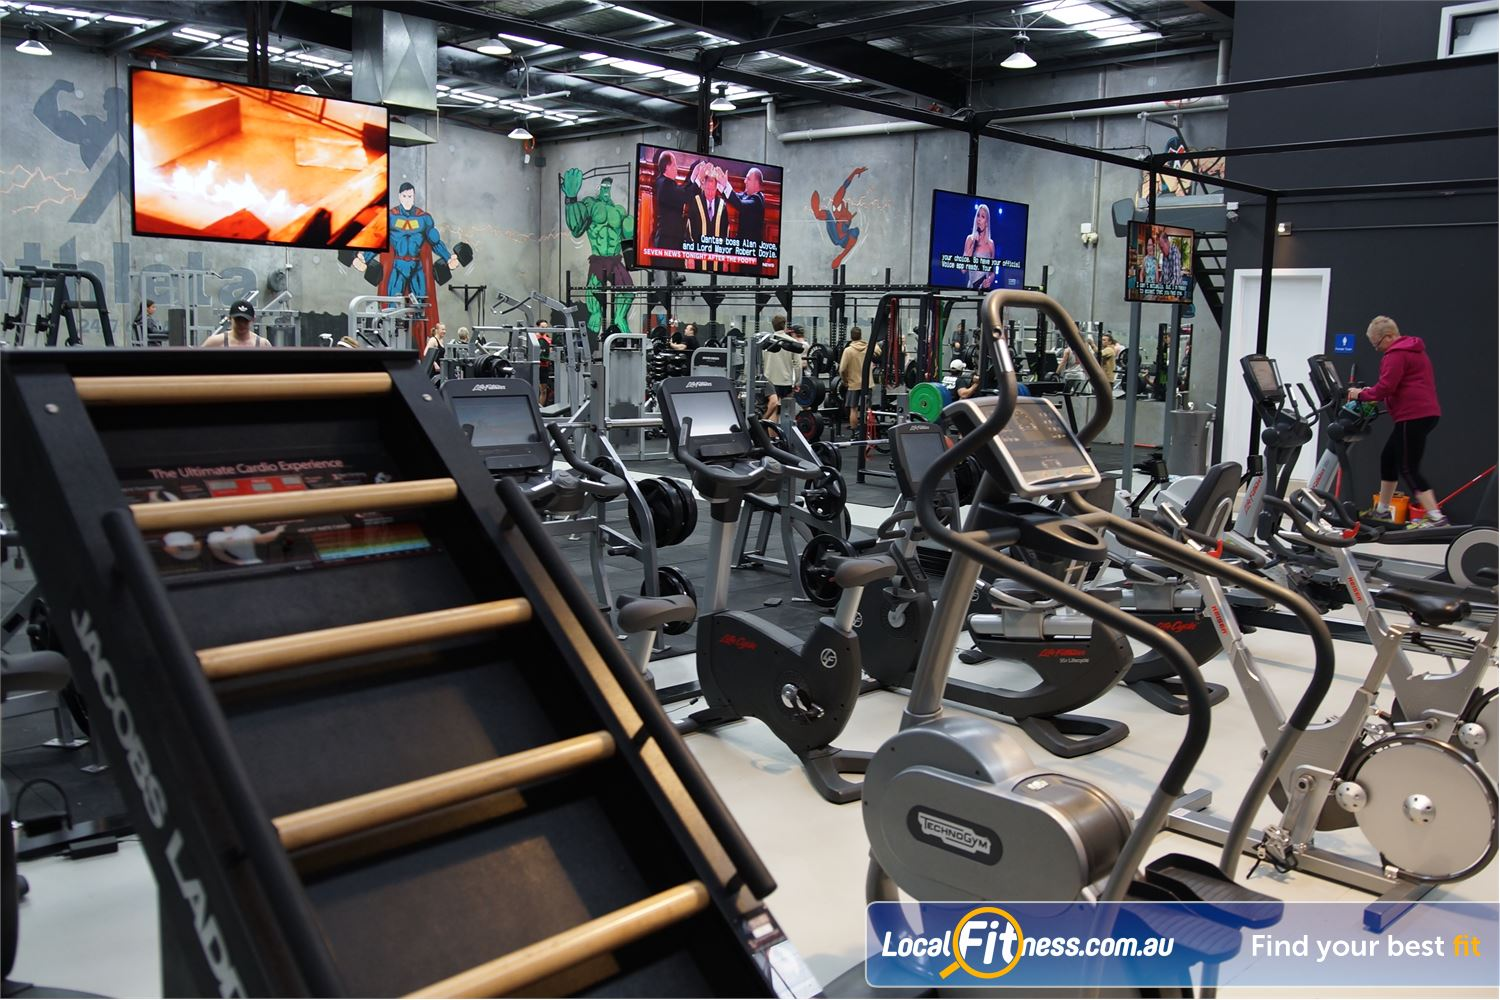 Athleta Gym Near Seaholme Try the Jacobs ladder cardio machine to vary your workout.